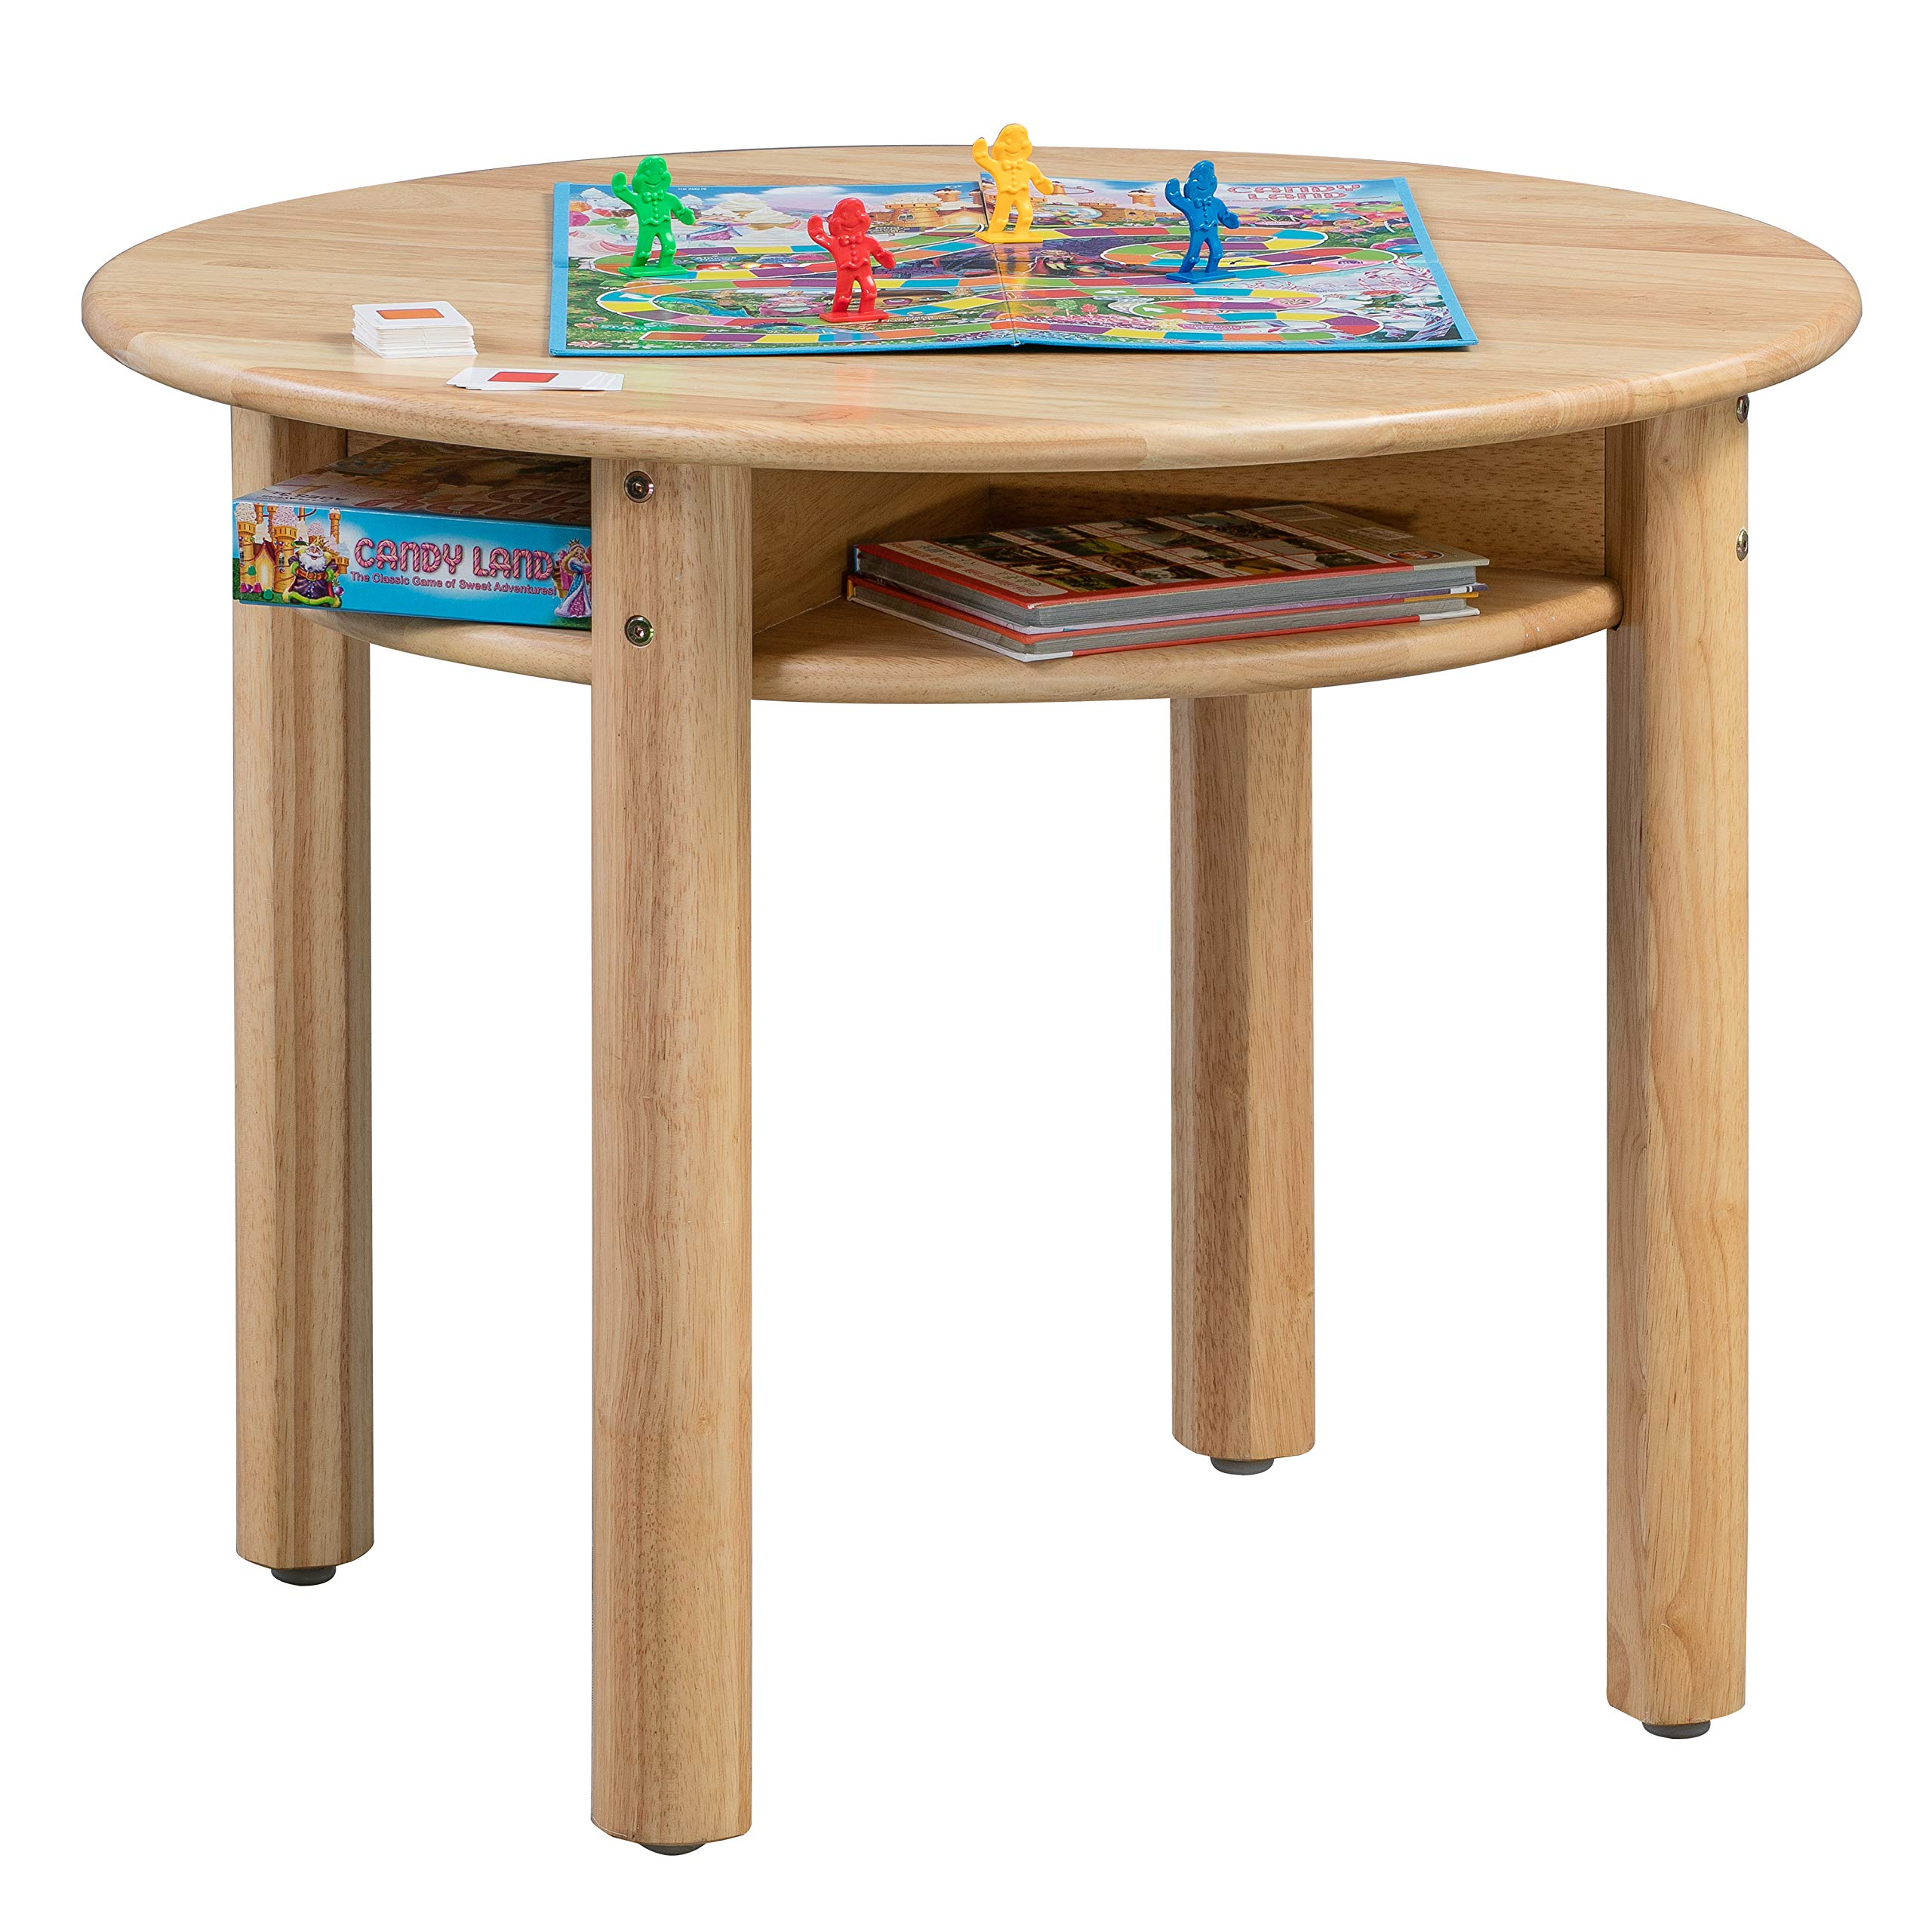 ECR4Kids Stowaway Table - Solid Wood Round Kids Table with Built-in Storage, Natural by ECR4Kids